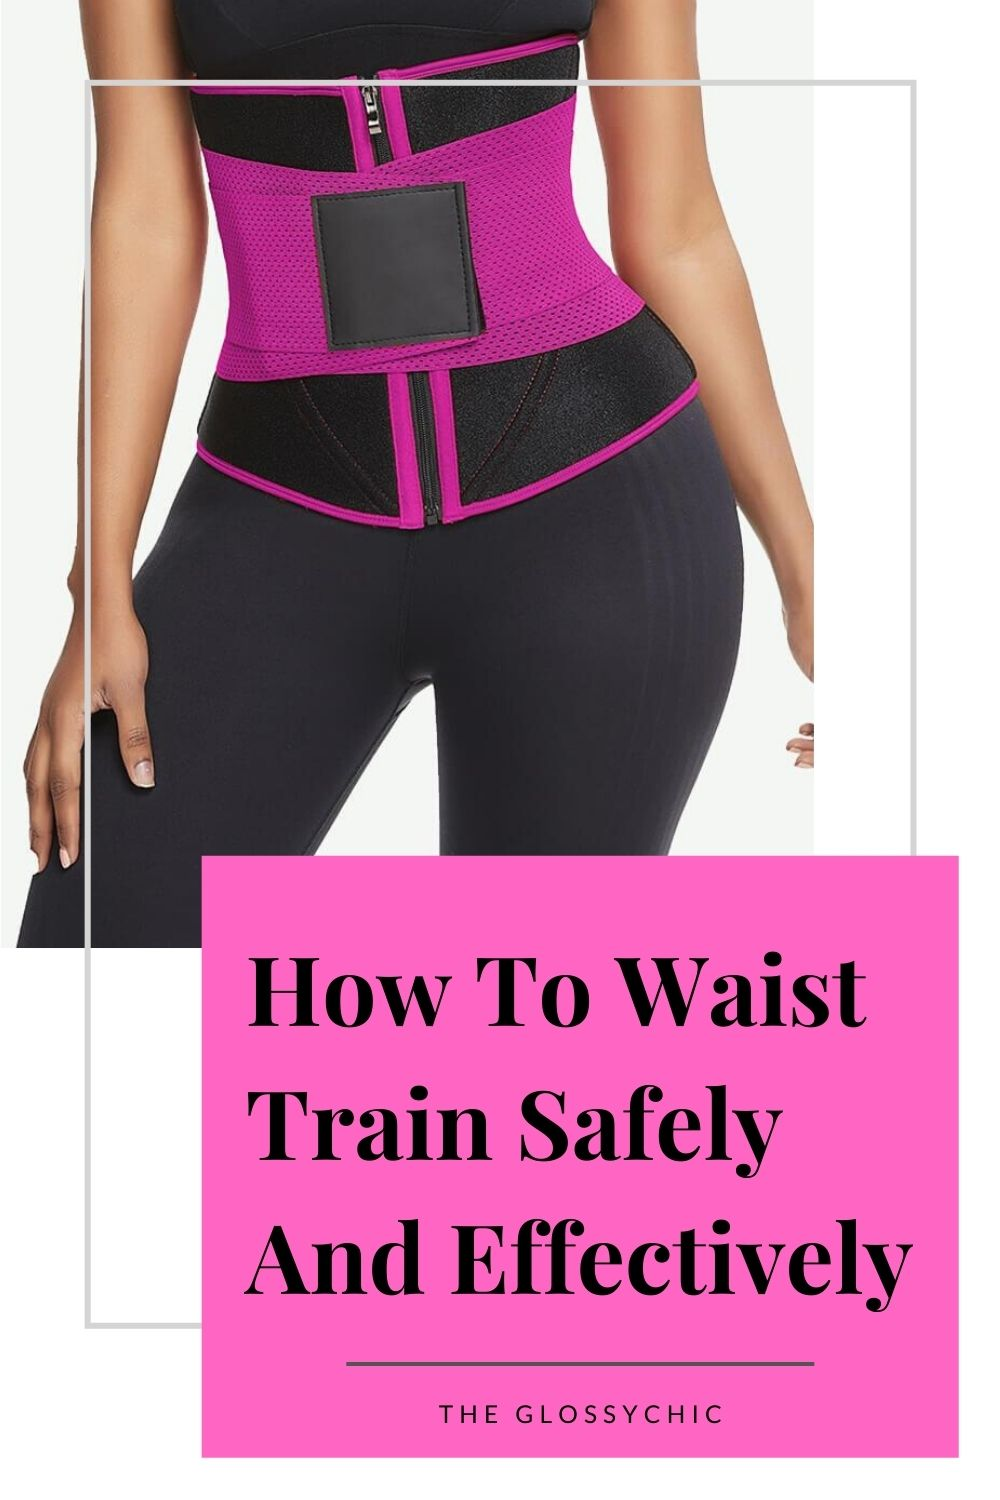 how to waist train safely an effectively